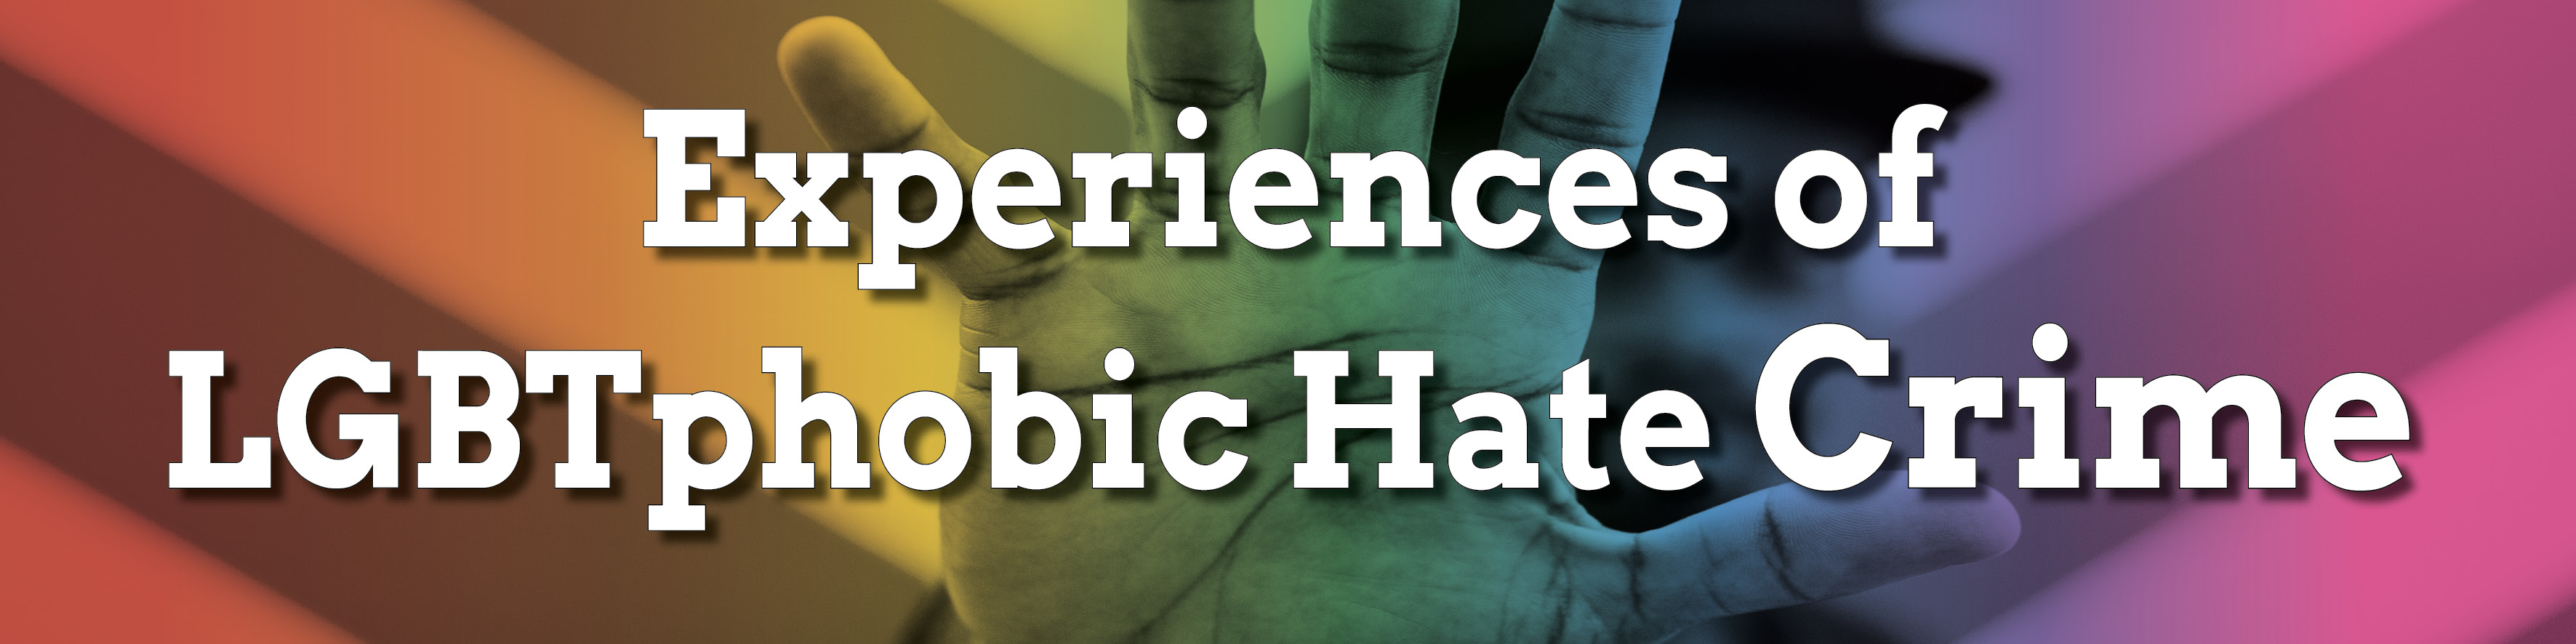 Experiences of LGBTphobic hate crime